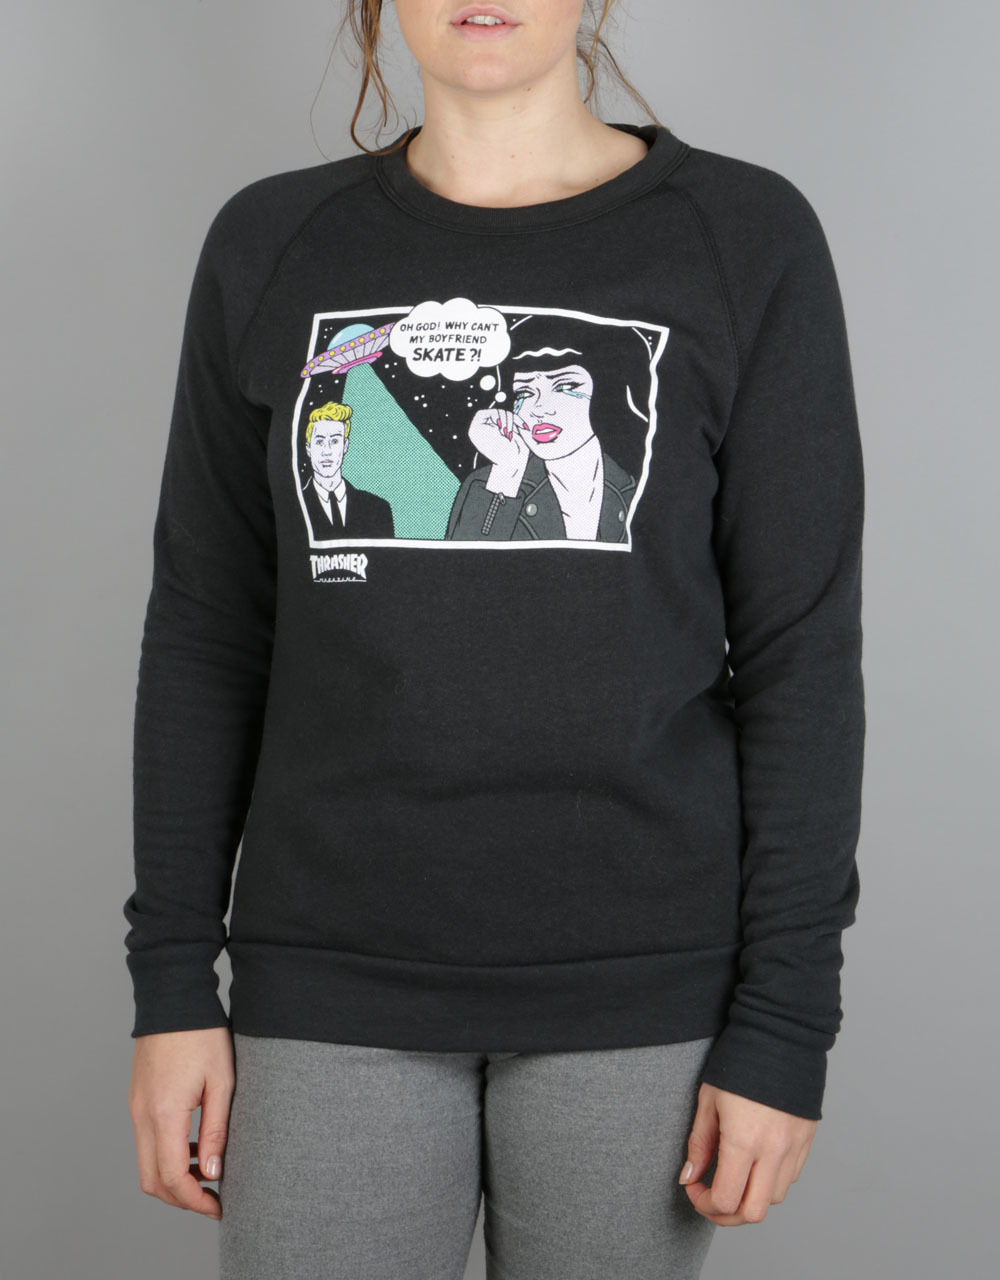 5af54a196 Thrasher Alien Boyfriend Crewneck Sweat - Black | Skate Sweatshirts | Mens  Skateboard Crewneck Sweats | Clothing | Route One